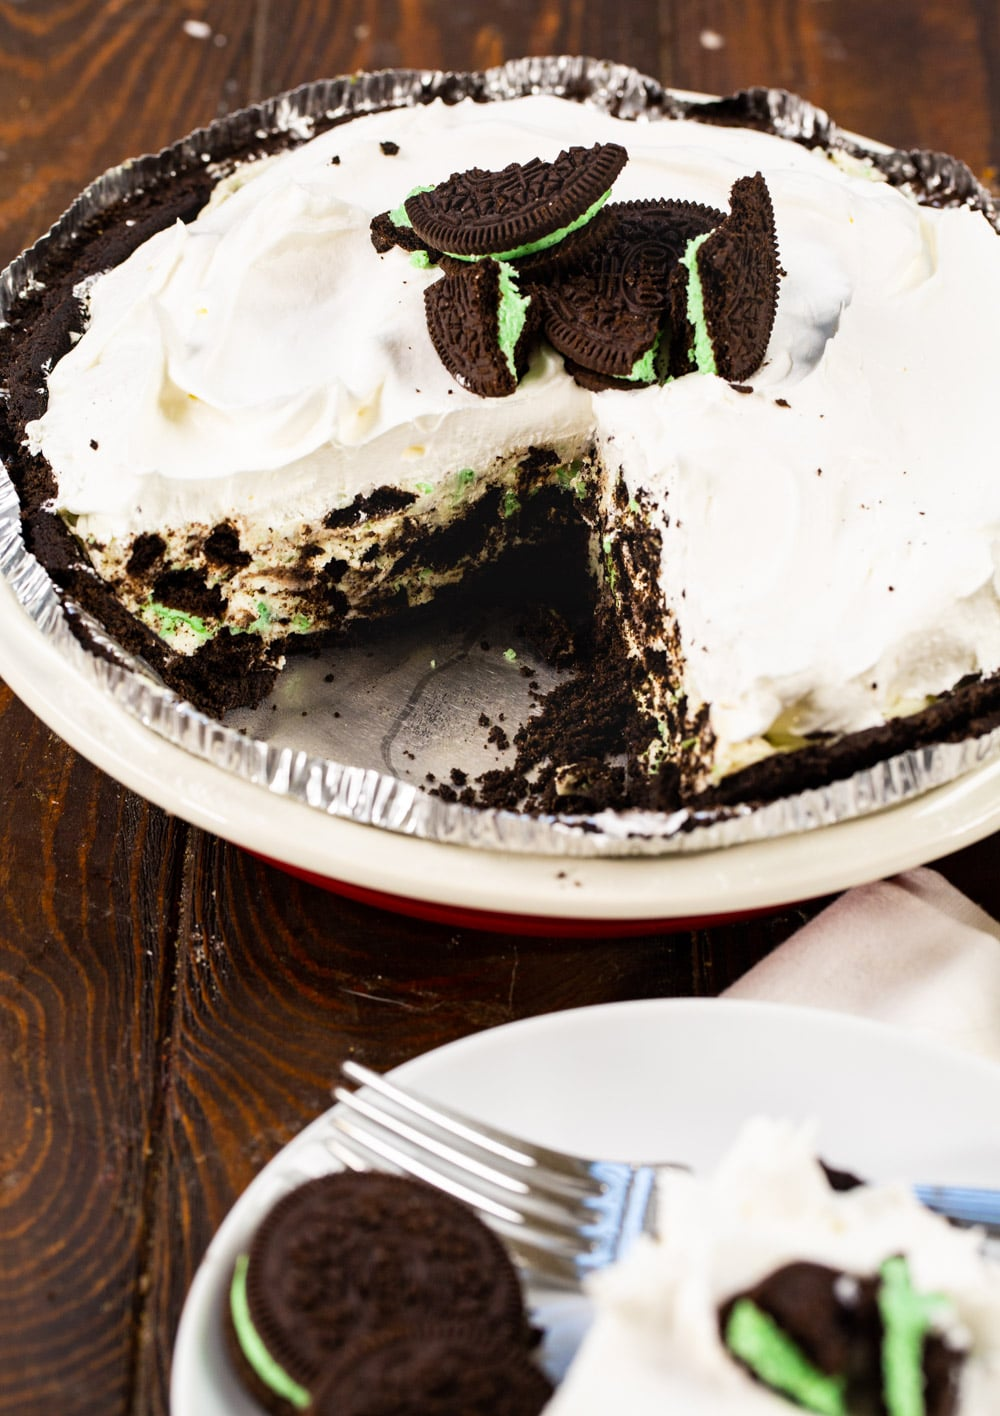 Mint Oreo Pie with a slice cut out.